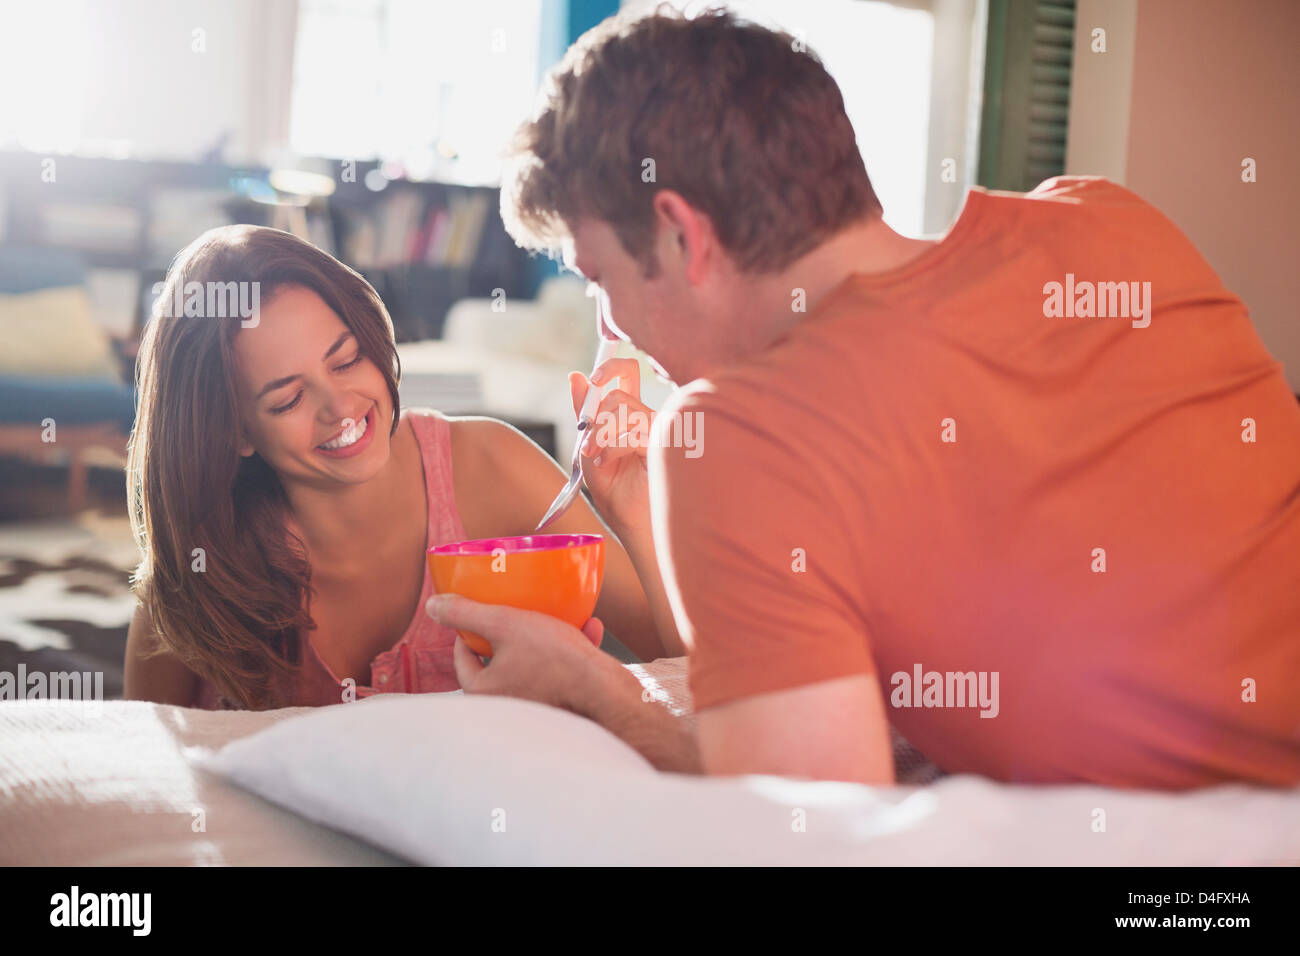 Couple eating breakfast in bed together Photo Stock